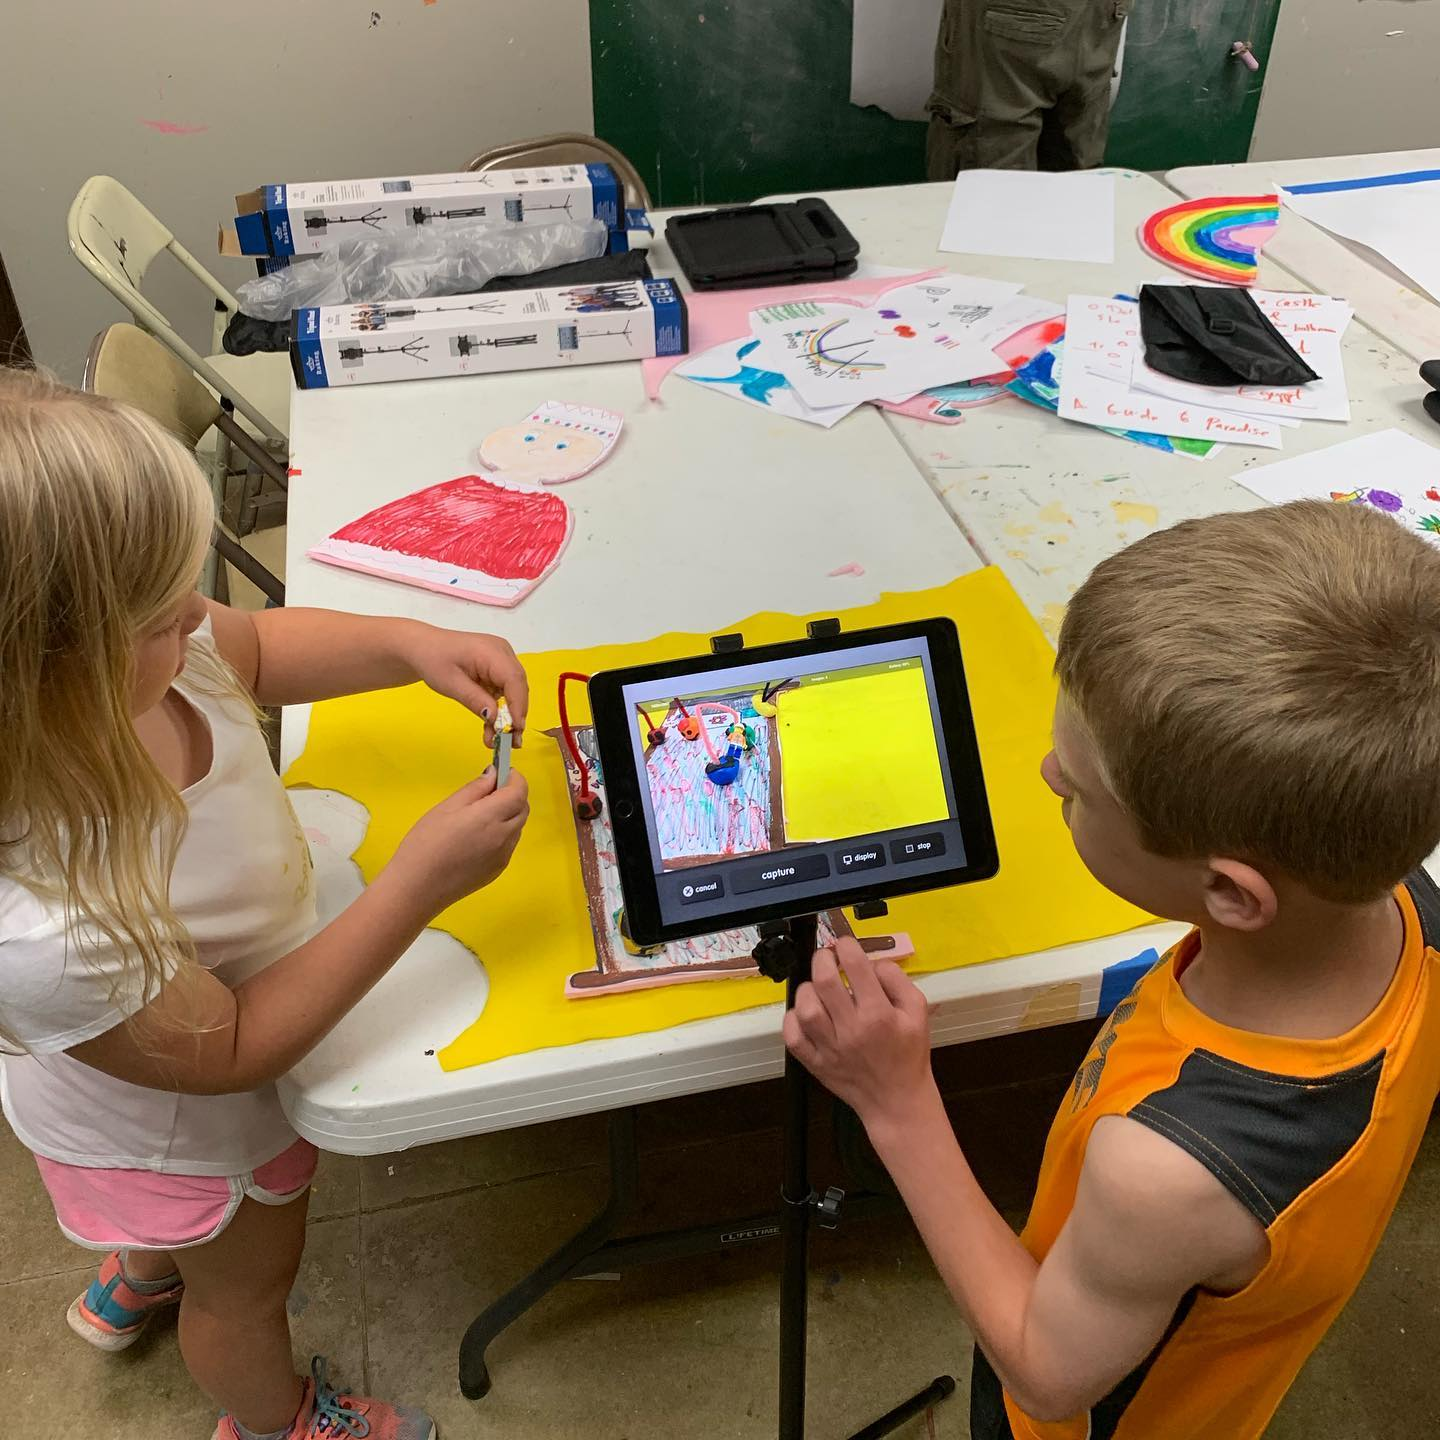 Two kids recording on an ipad.